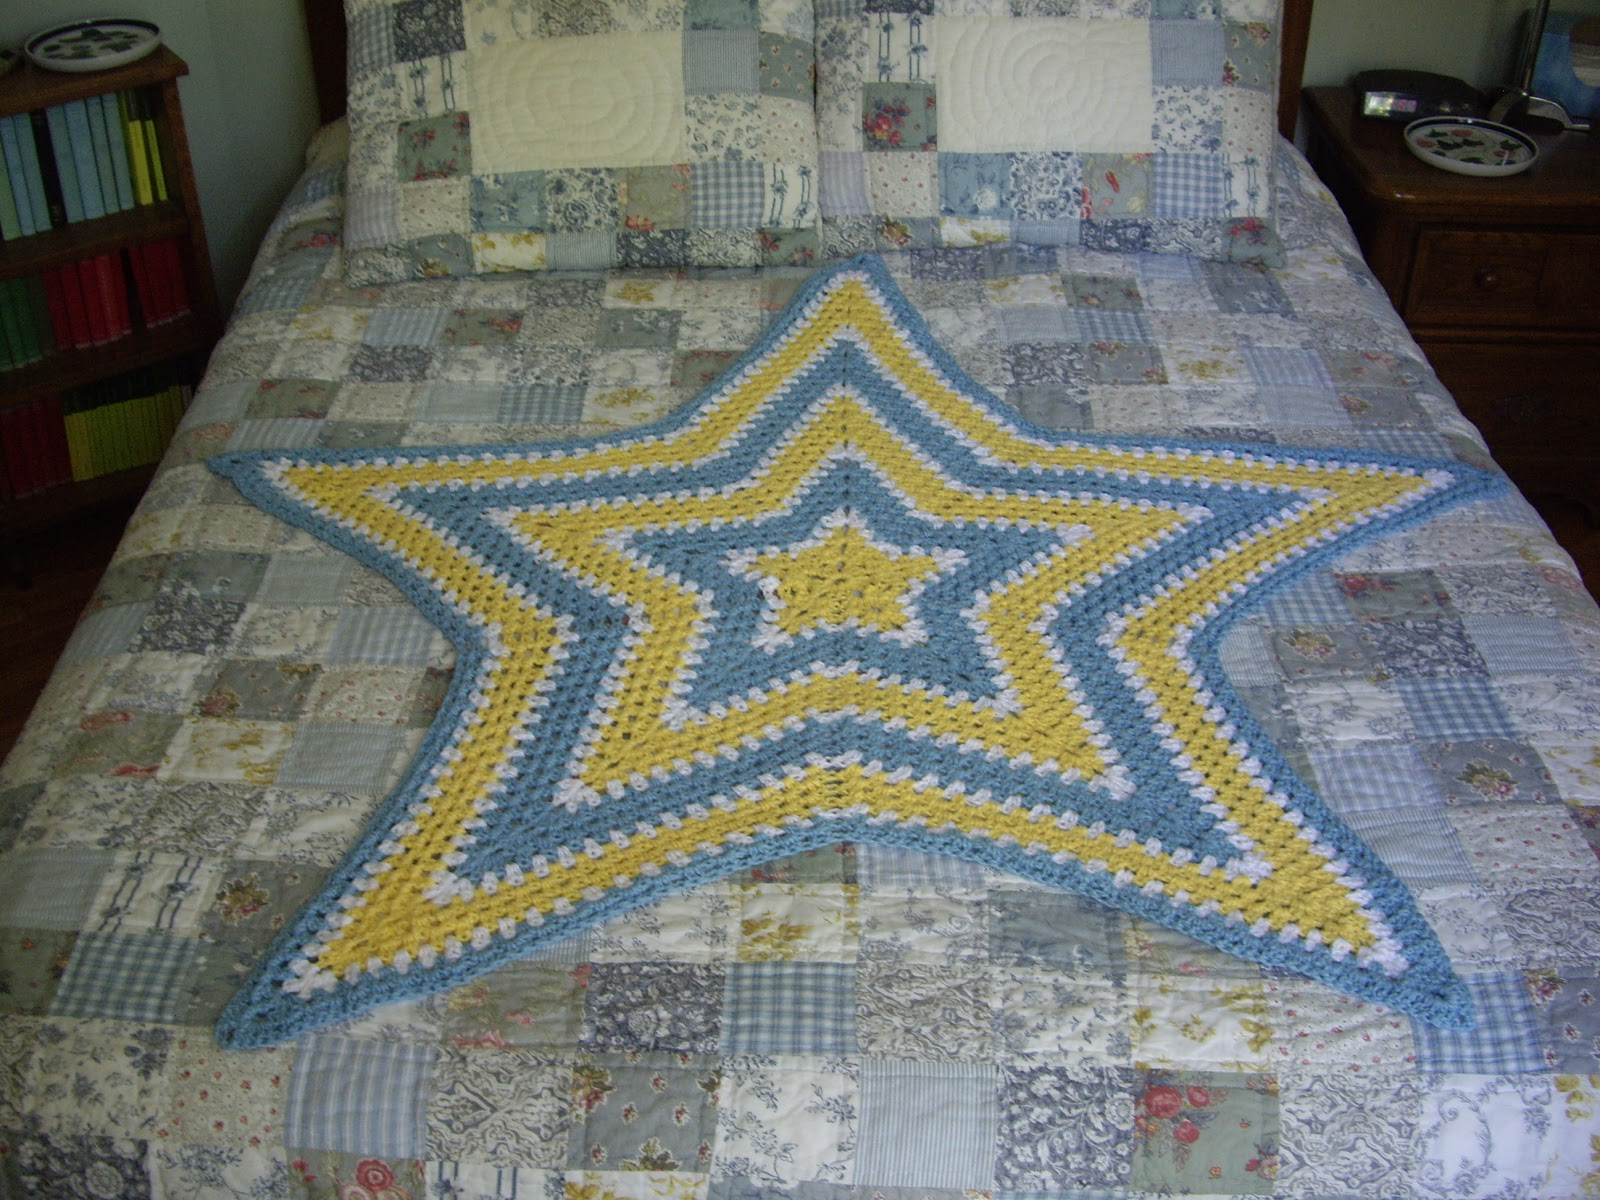 12 Point Star Afghan Pattern http://caffeinatedyarn.blogspot.com/2011/05/seeing-stars.html